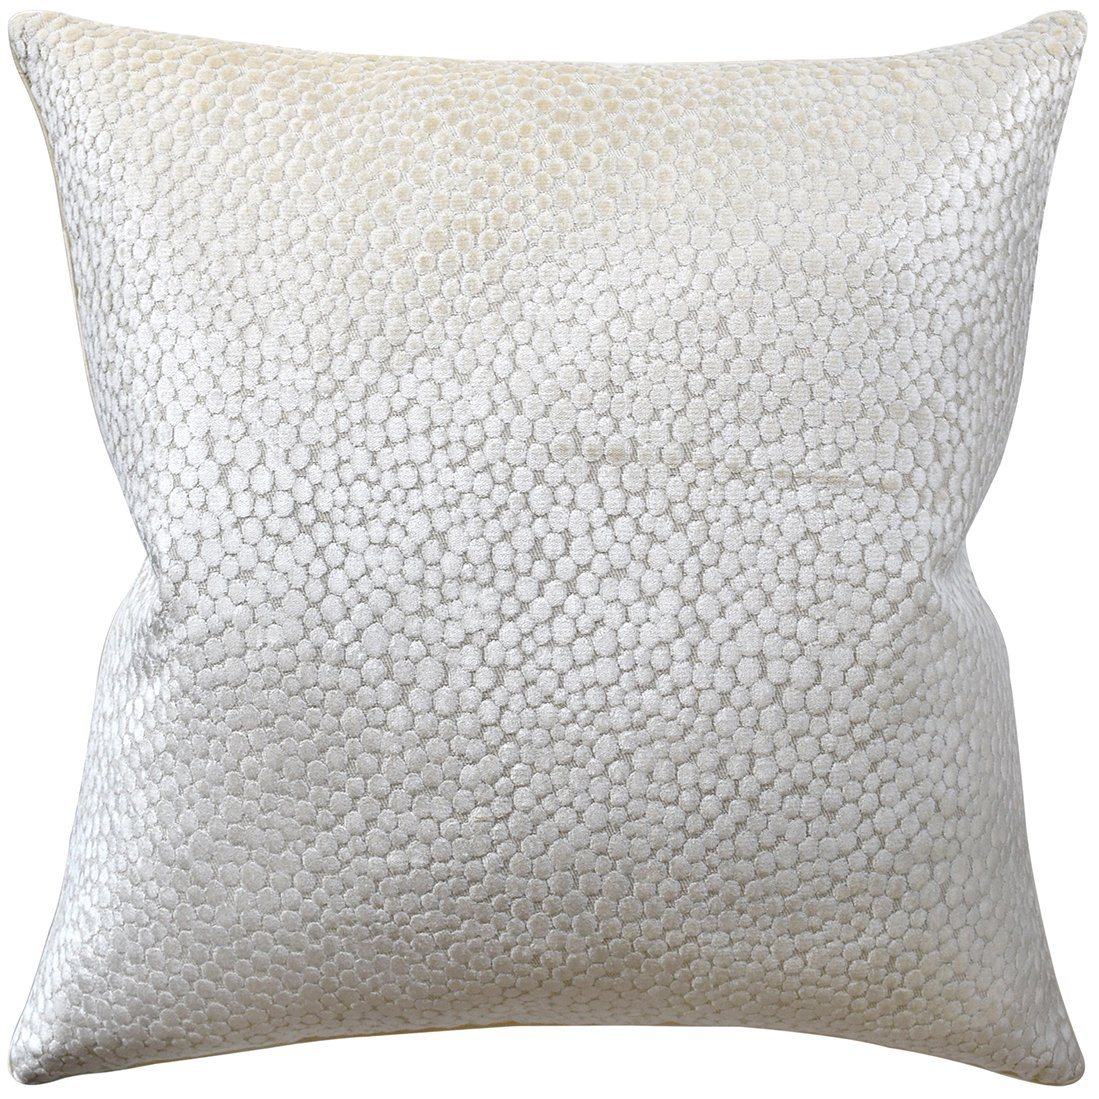 Polka Dot Plush Natural Pillow | Ryan Studio Pillows at Fig Linens